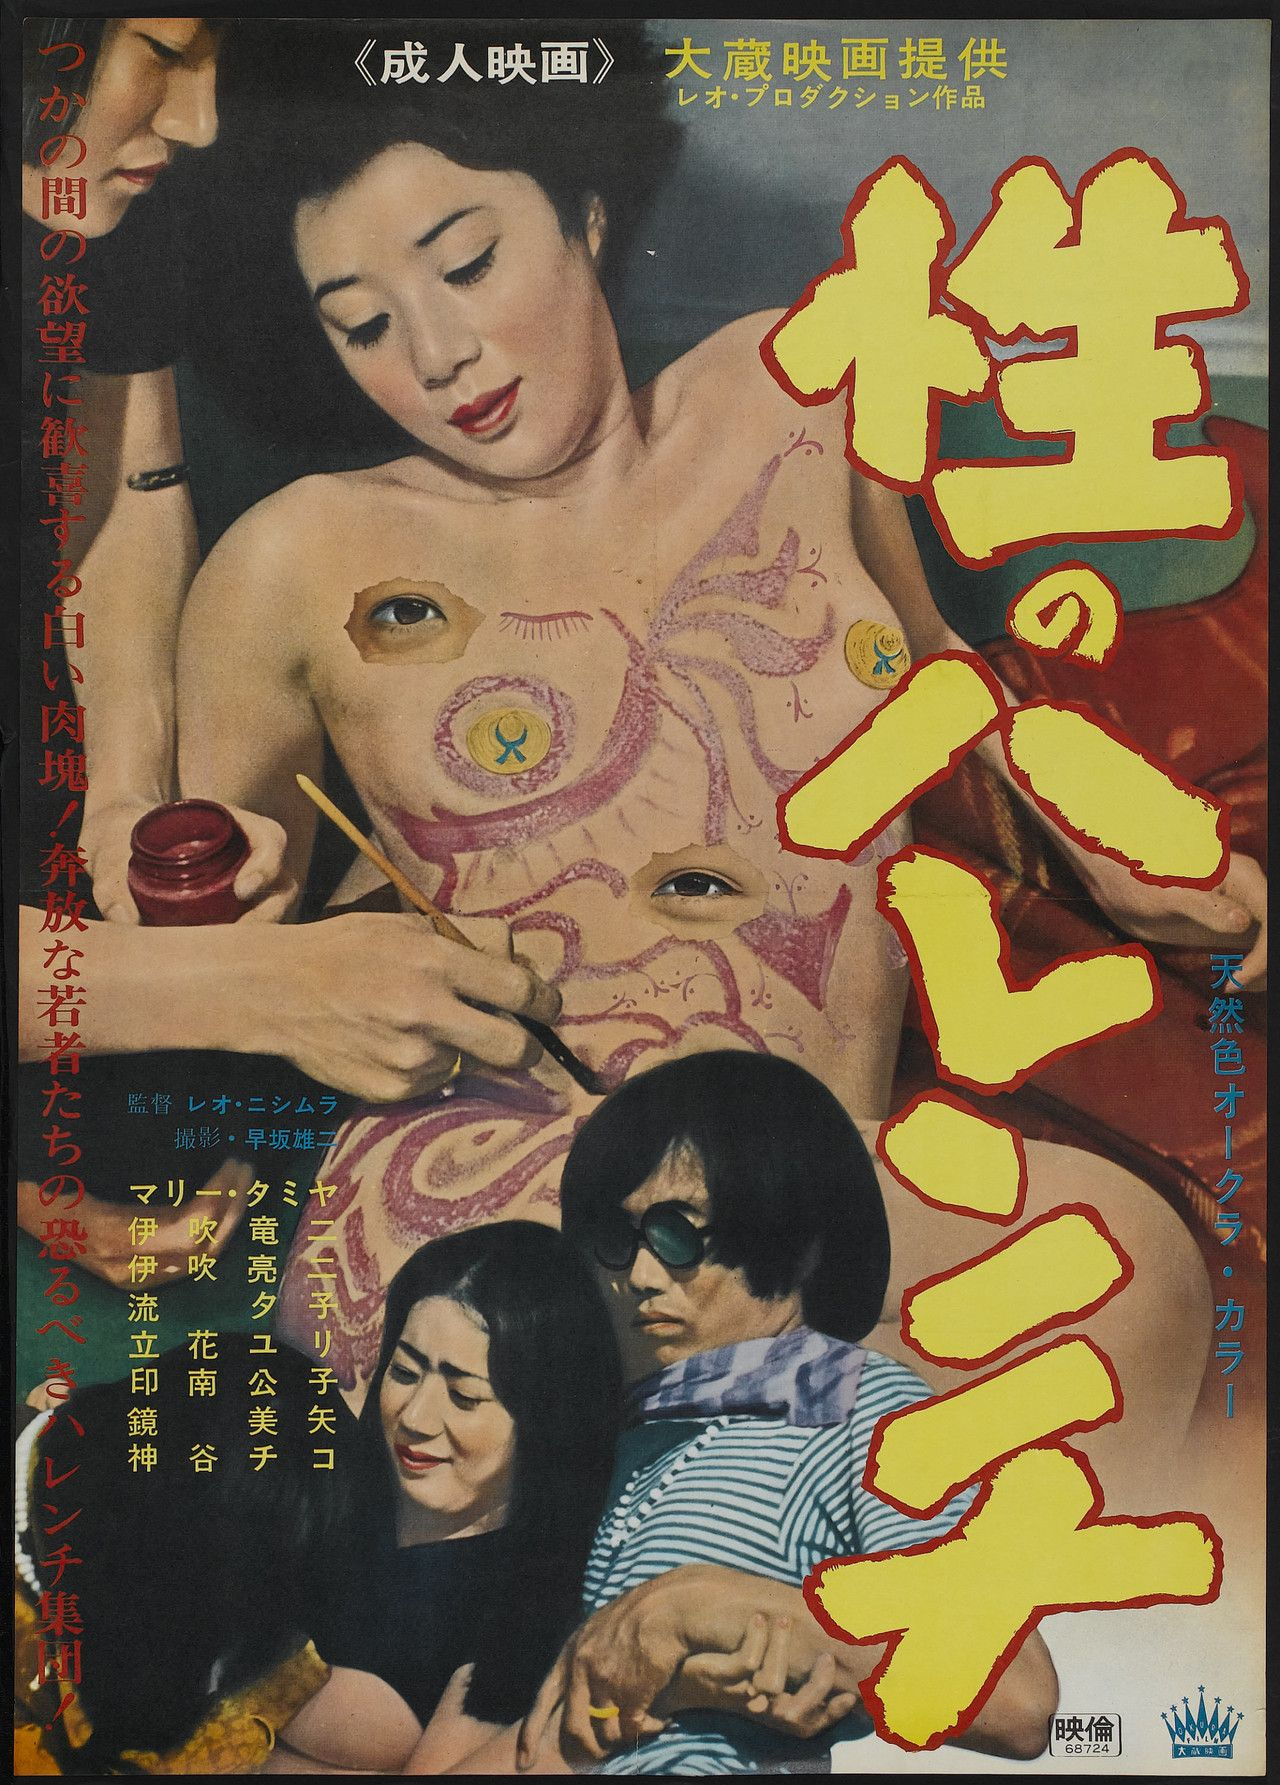 japanese retro porn Japanese vintage Adult Movie advertizing Poster. Japan. S)